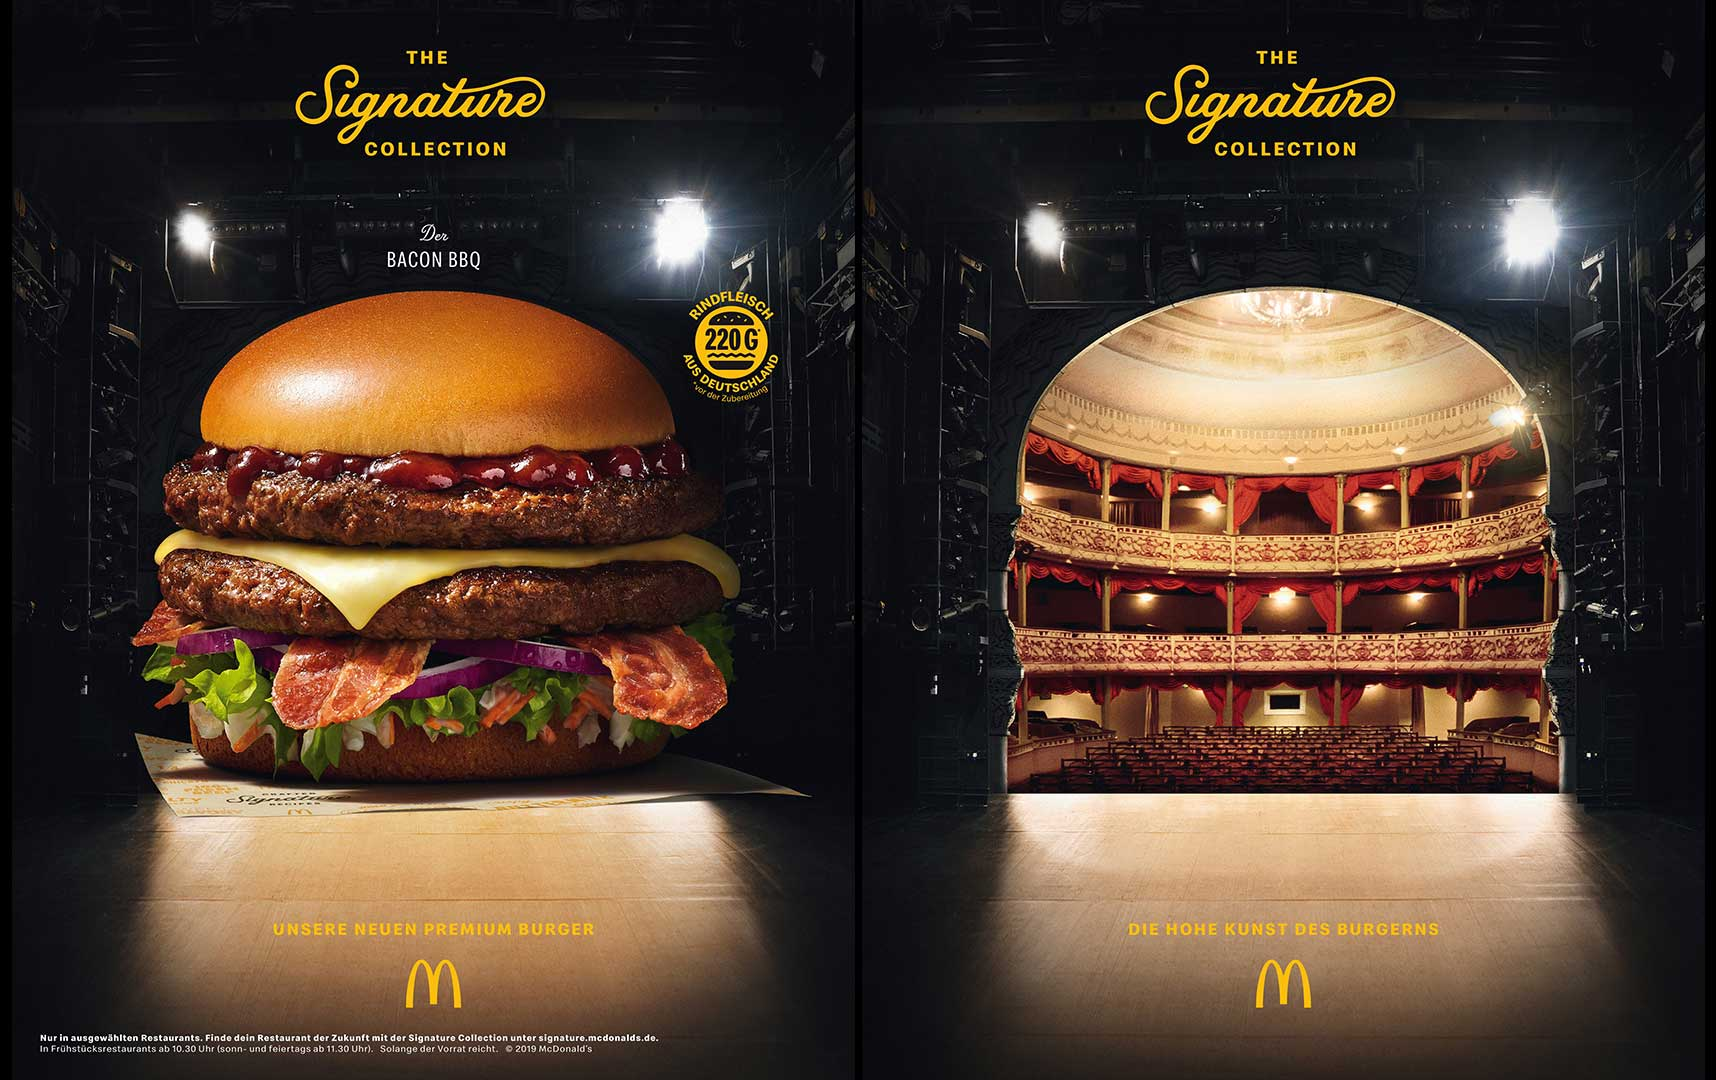 The Theatre Burger by McDonalds Signature Collection